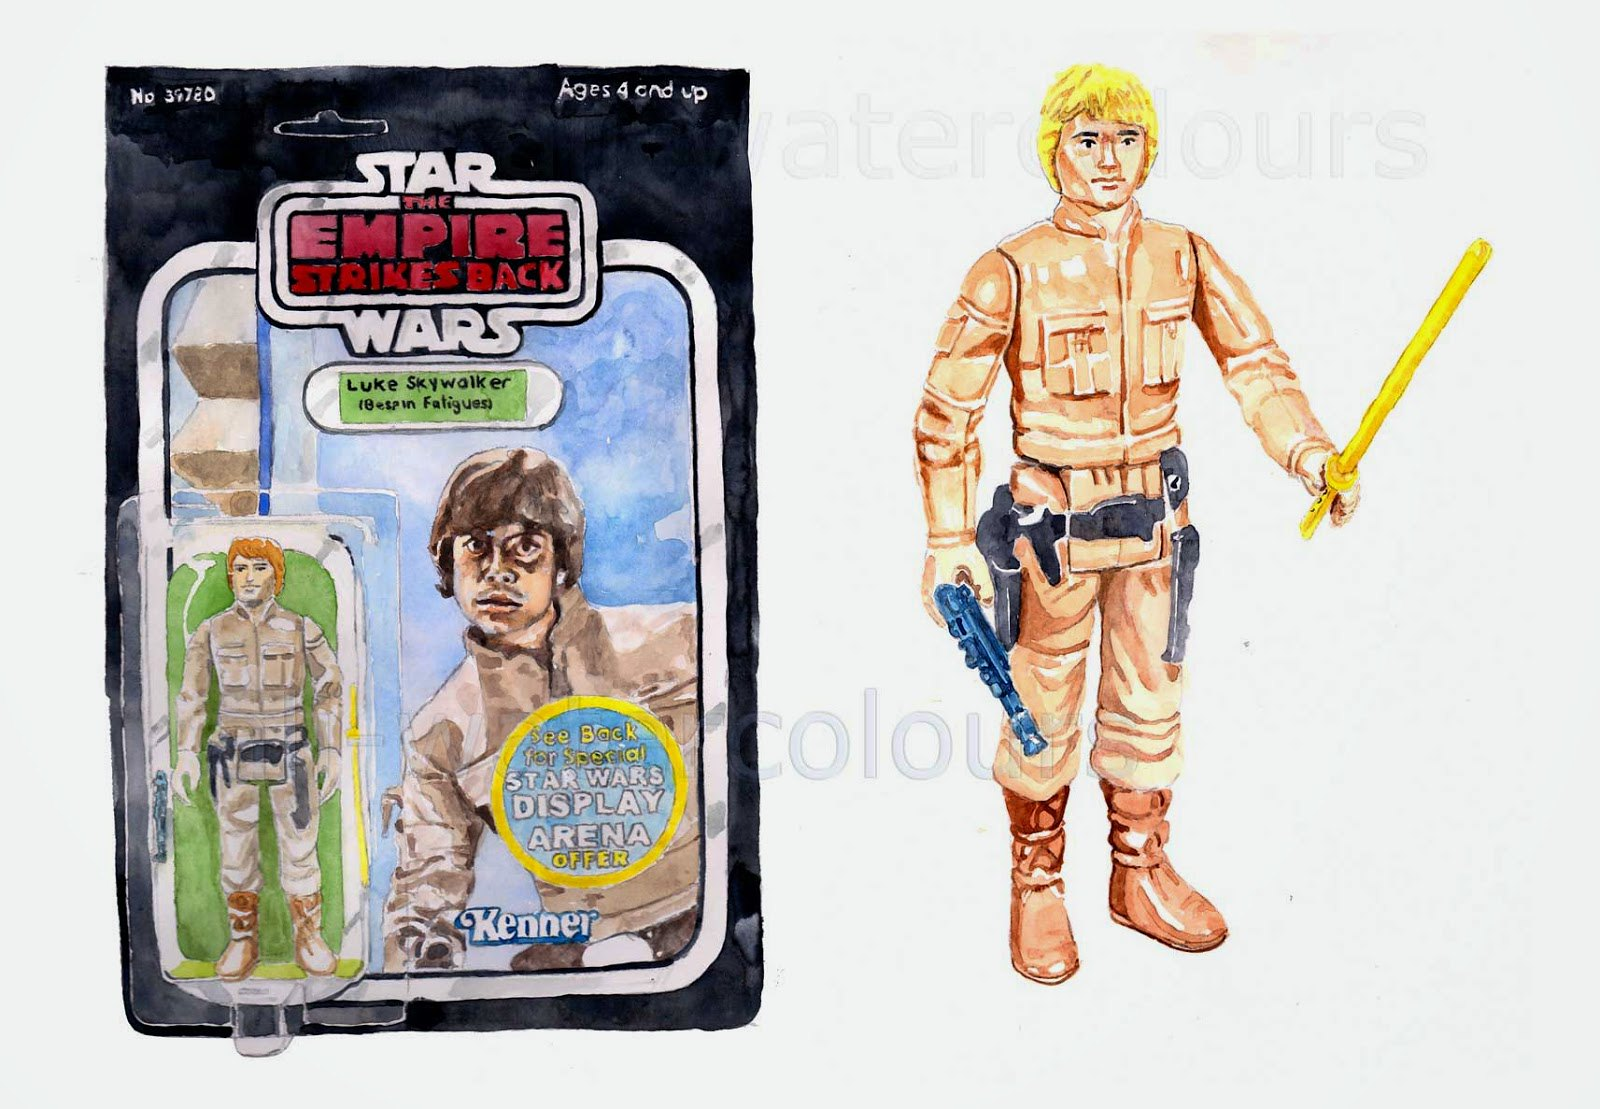 Vintage Star Wars toys, the art of Alastair Eales - Luke Bespin